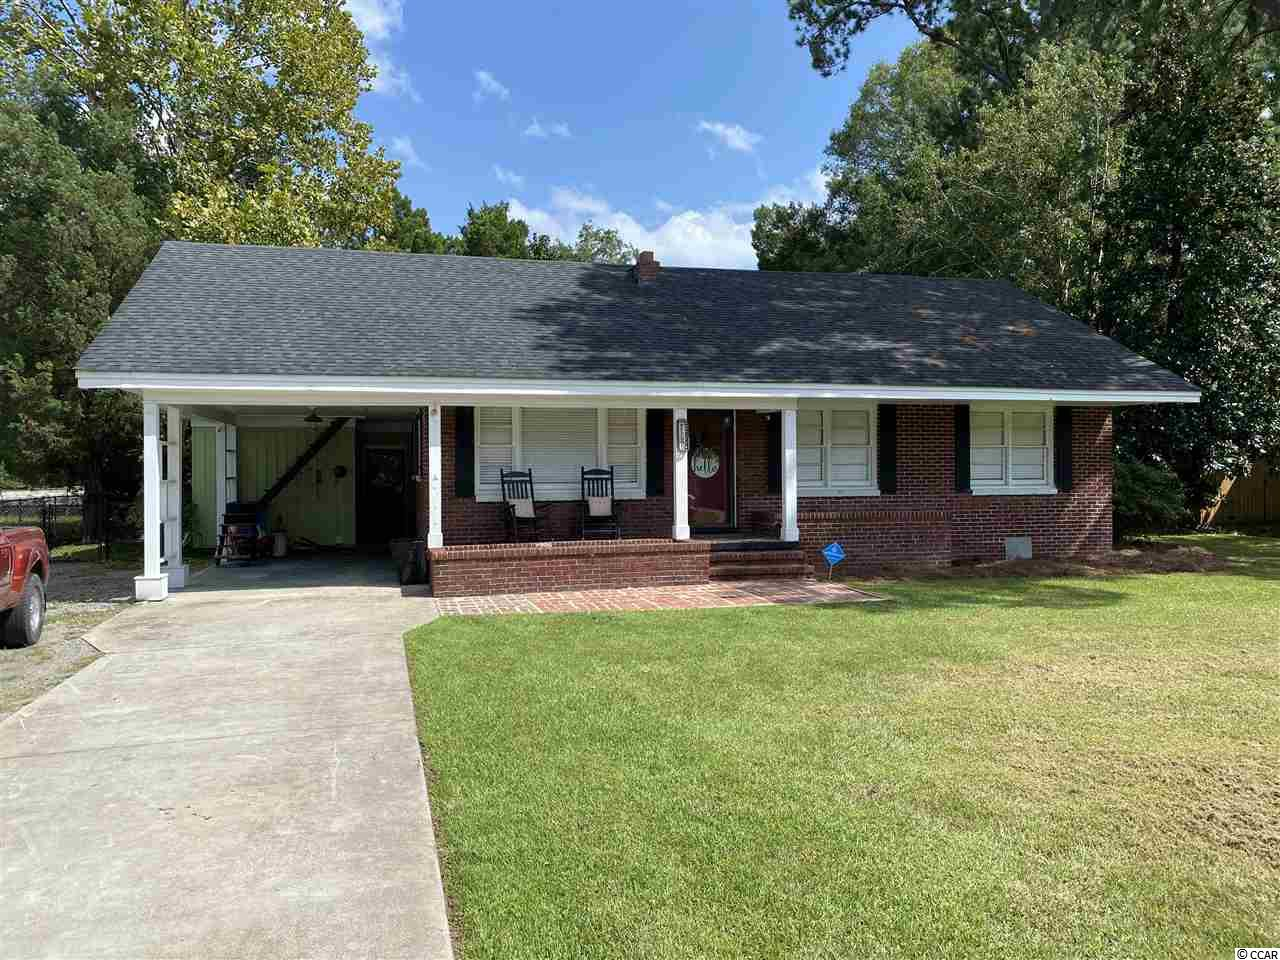 Cute two bedroom one and one half bath home. Located in Maryville just south of the historic district and close to several of the areas boat landings. Bonus room and screened porch are additional features that will standout in this offering. Carport parking, fenced yard, and no restrictions make this home a great choice.